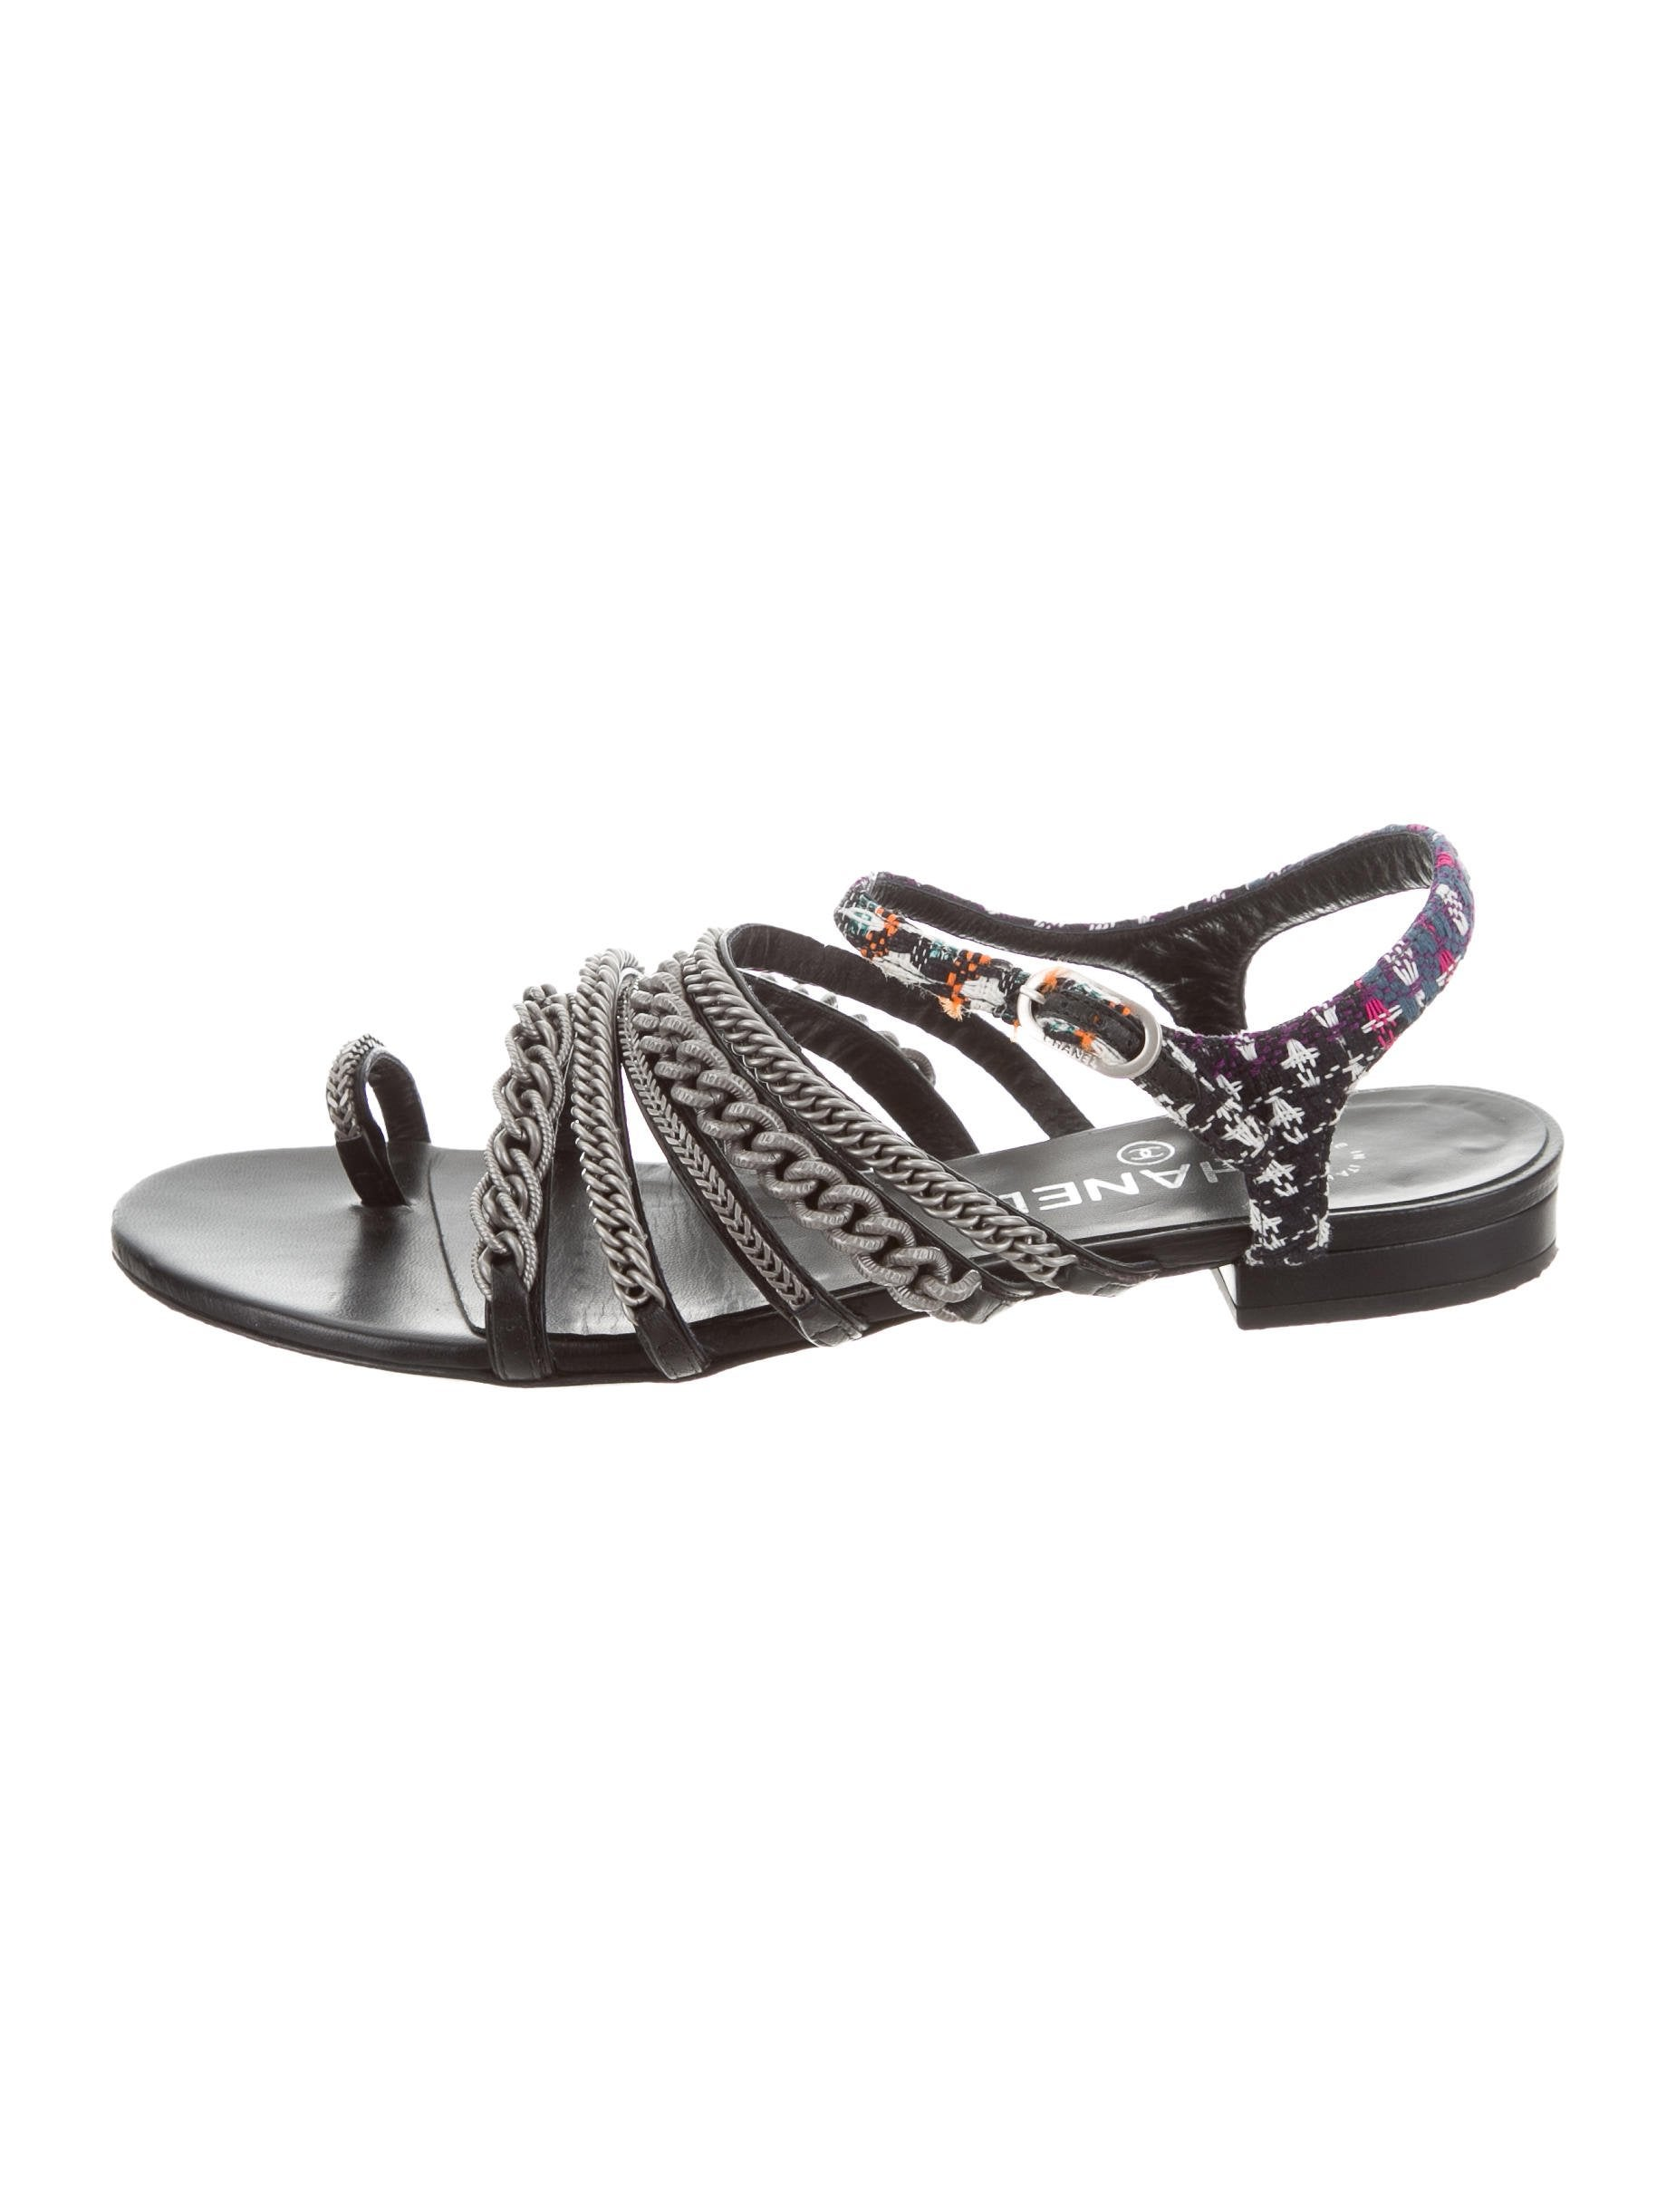 6ae41290dfb Chanel 2015 Tweed Chain-Link Sandals - Shoes - CHA228997